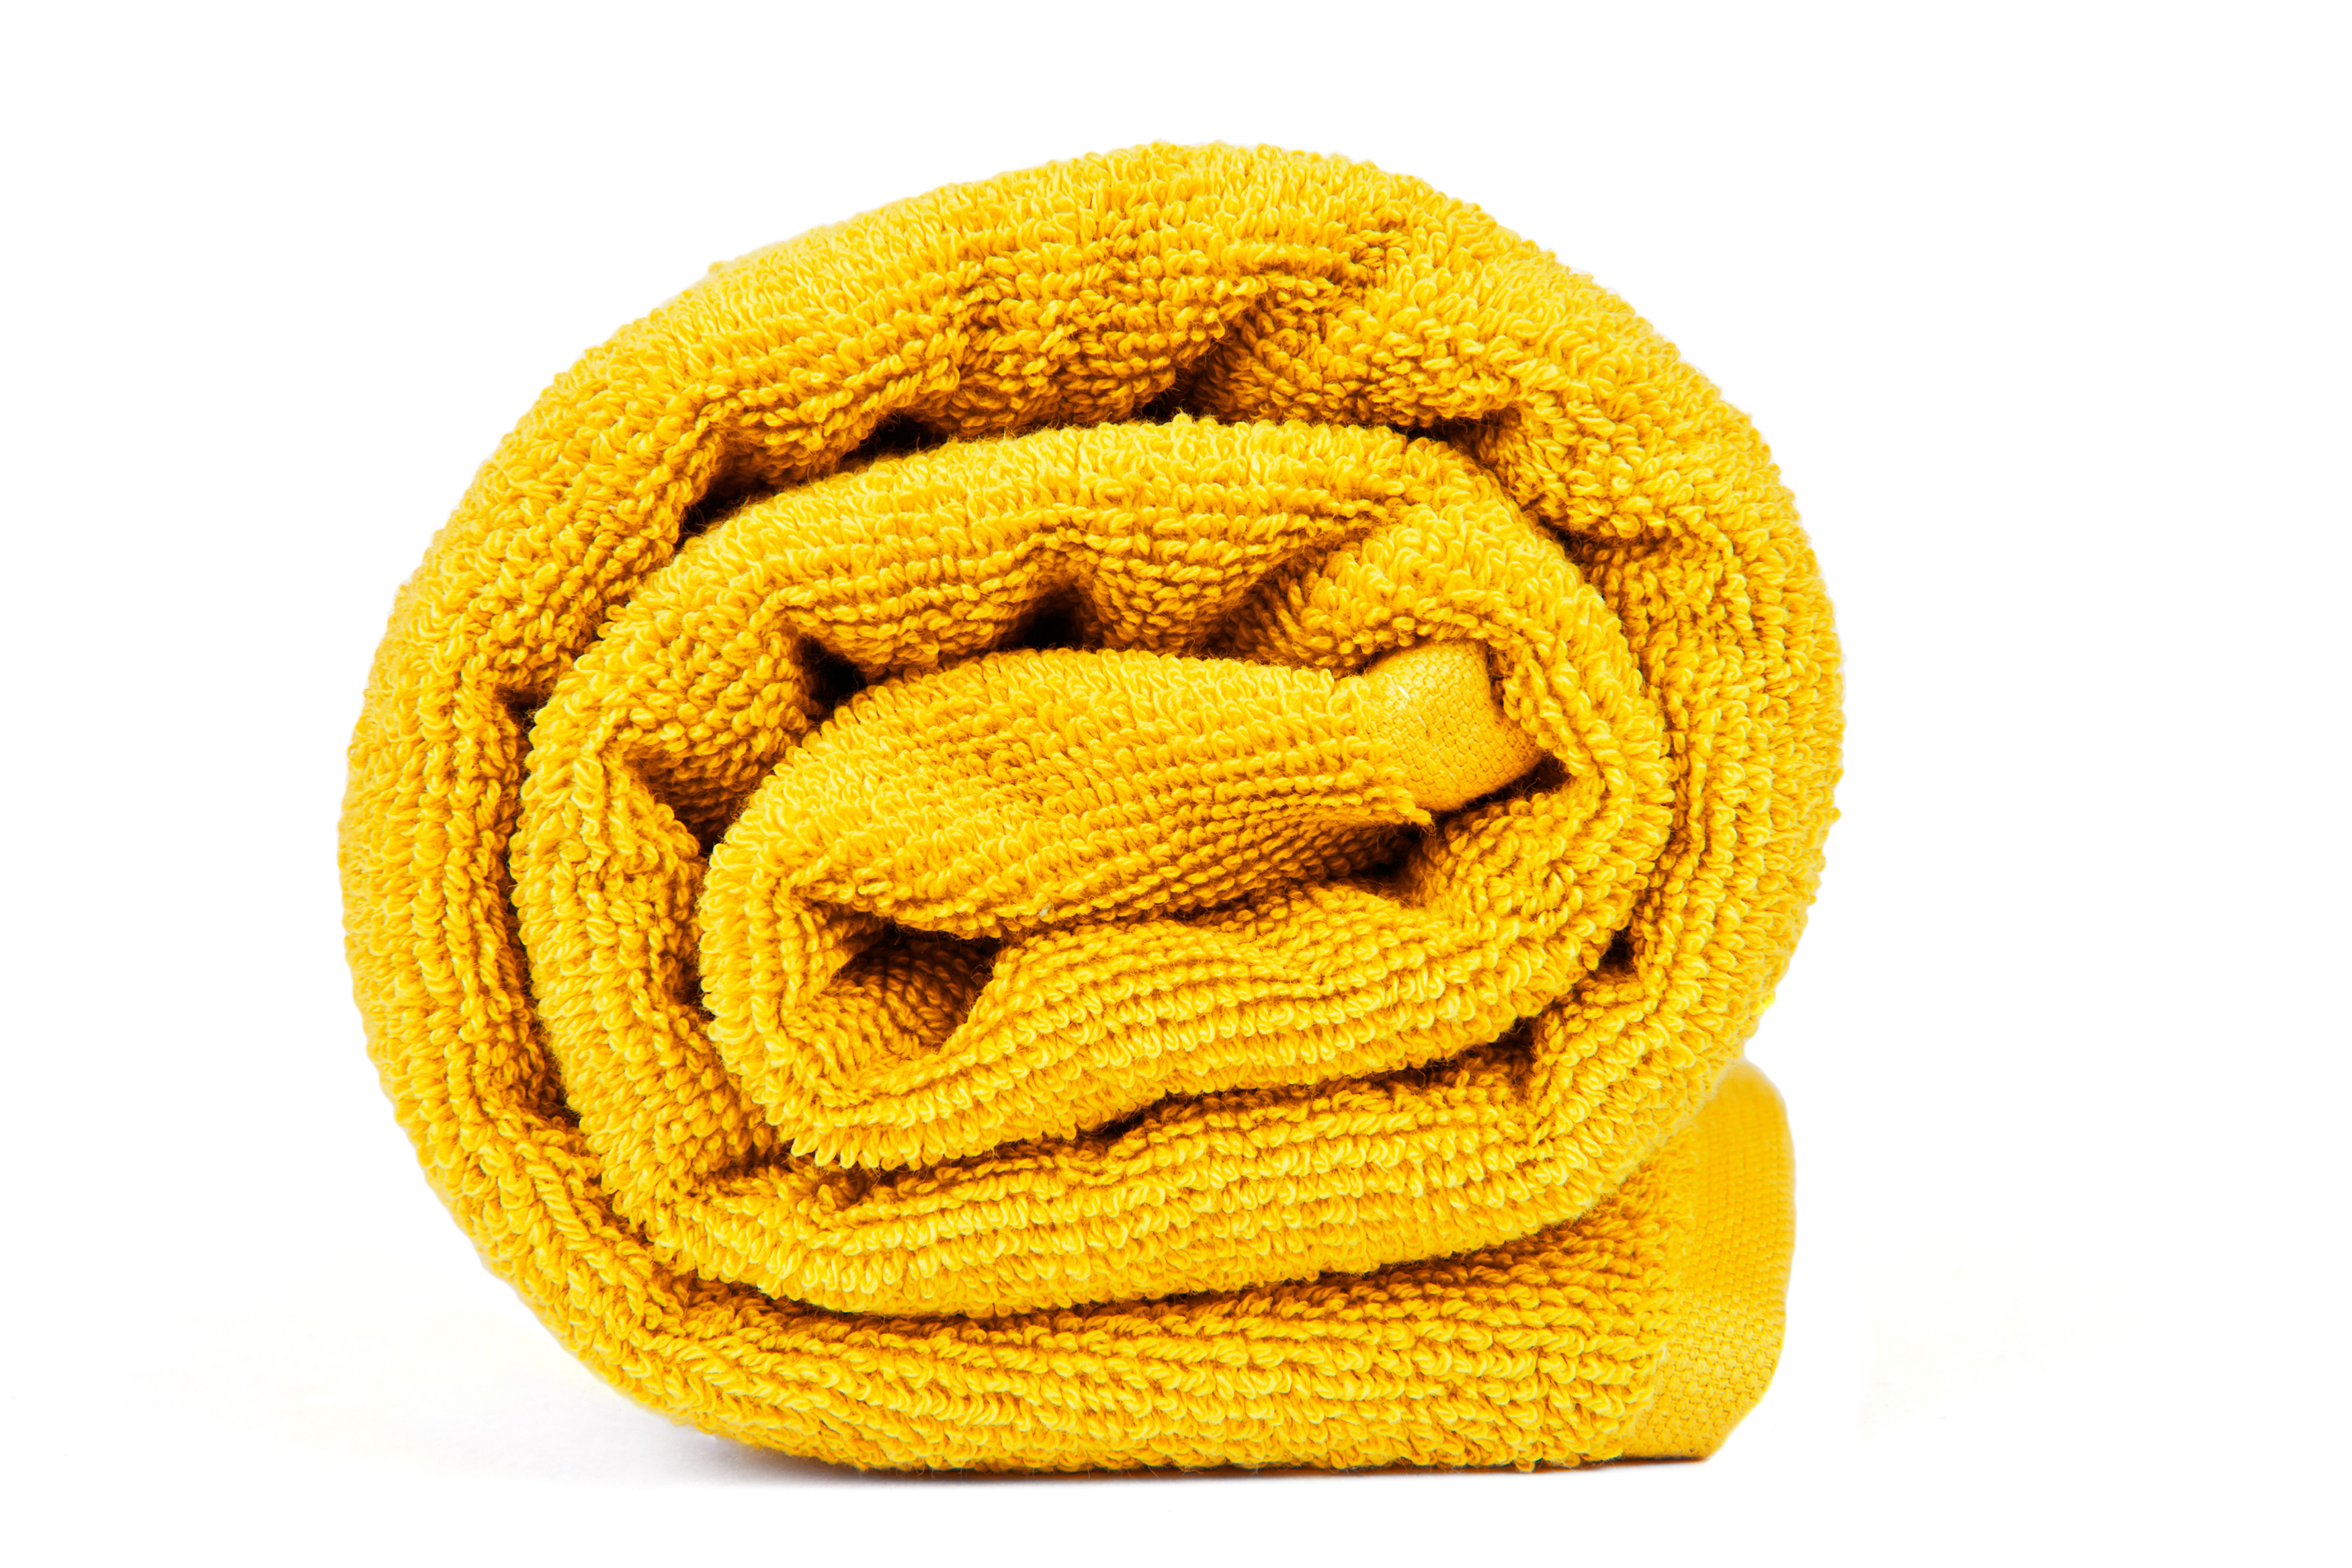 Highest quality towels in any colour